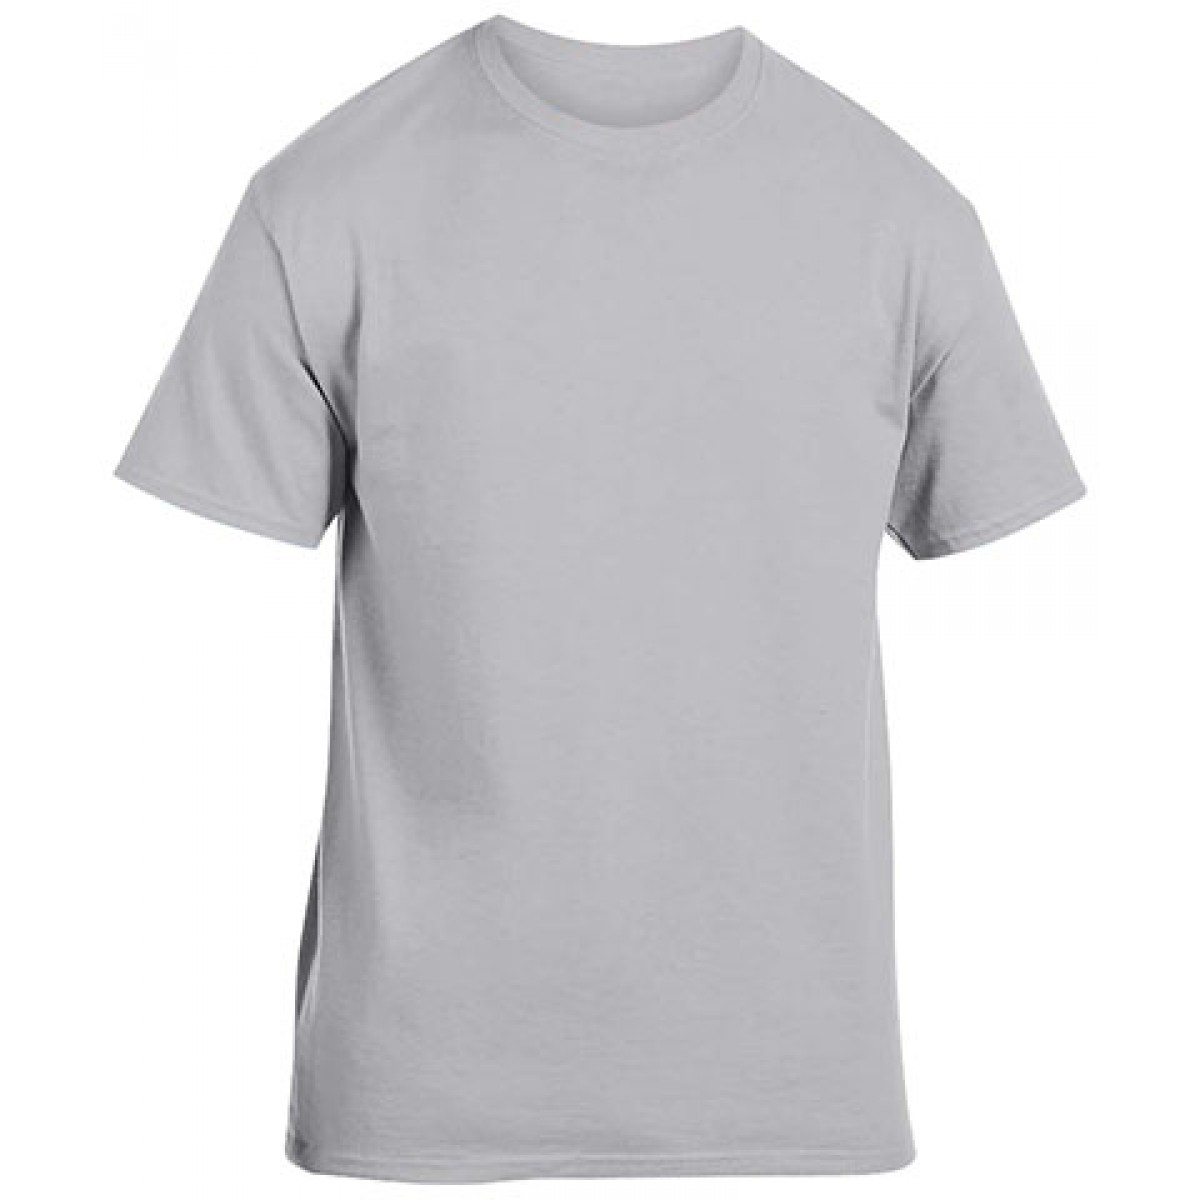 Cotton Short Sleeve T-Shirt Gray